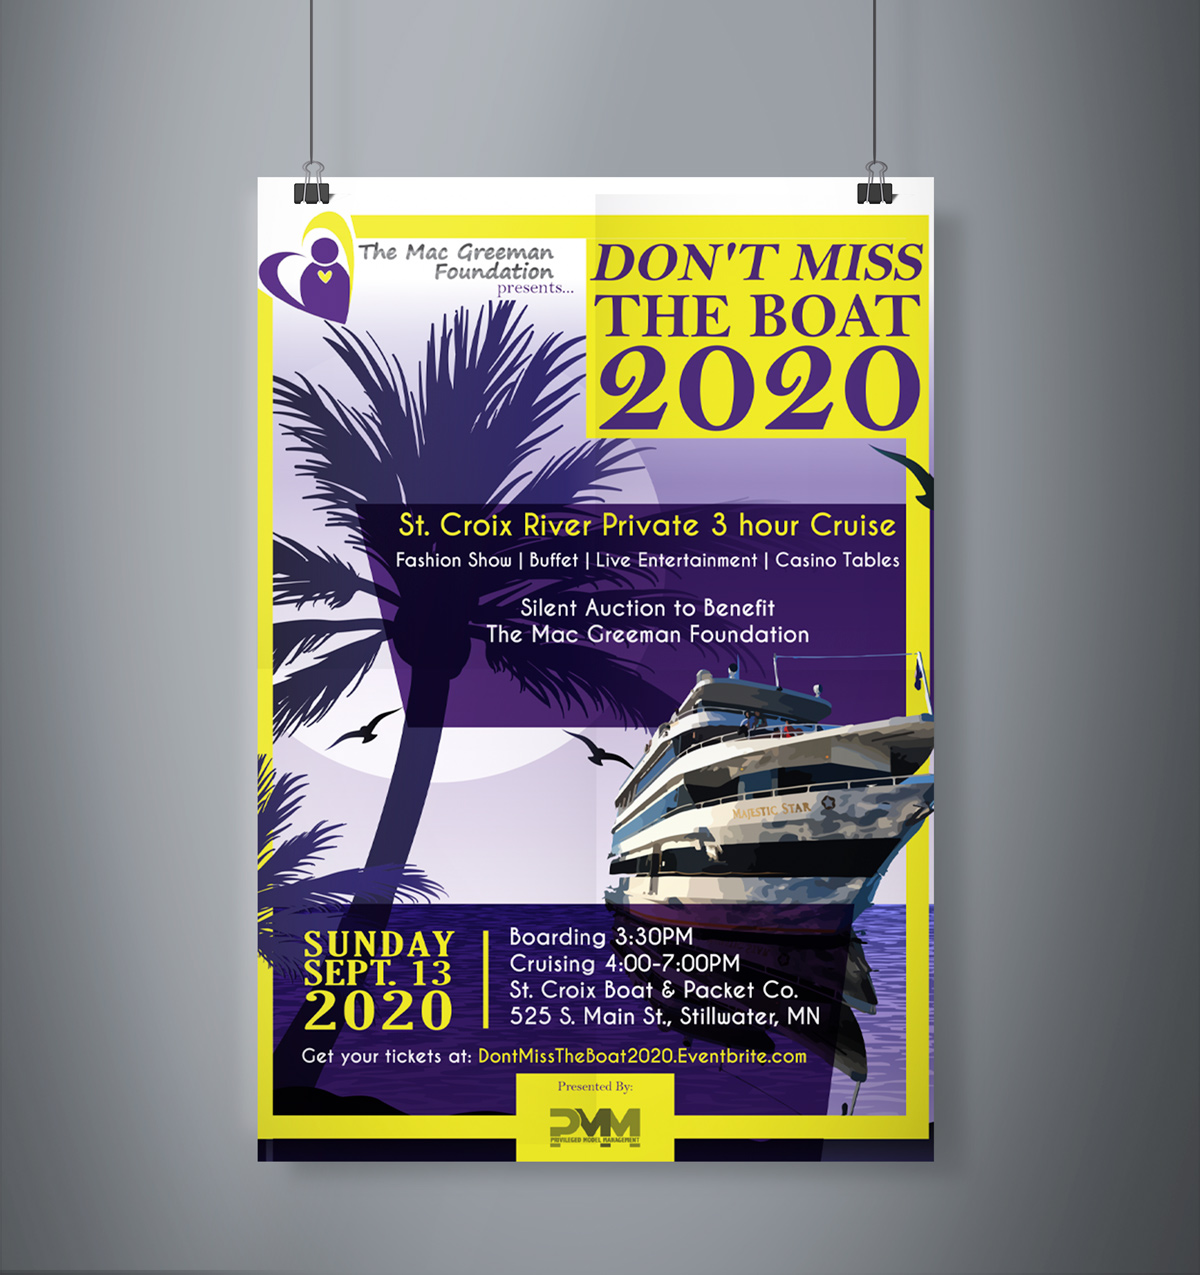 <span>Outdoor Photography, Photography</span>Event Poster Design